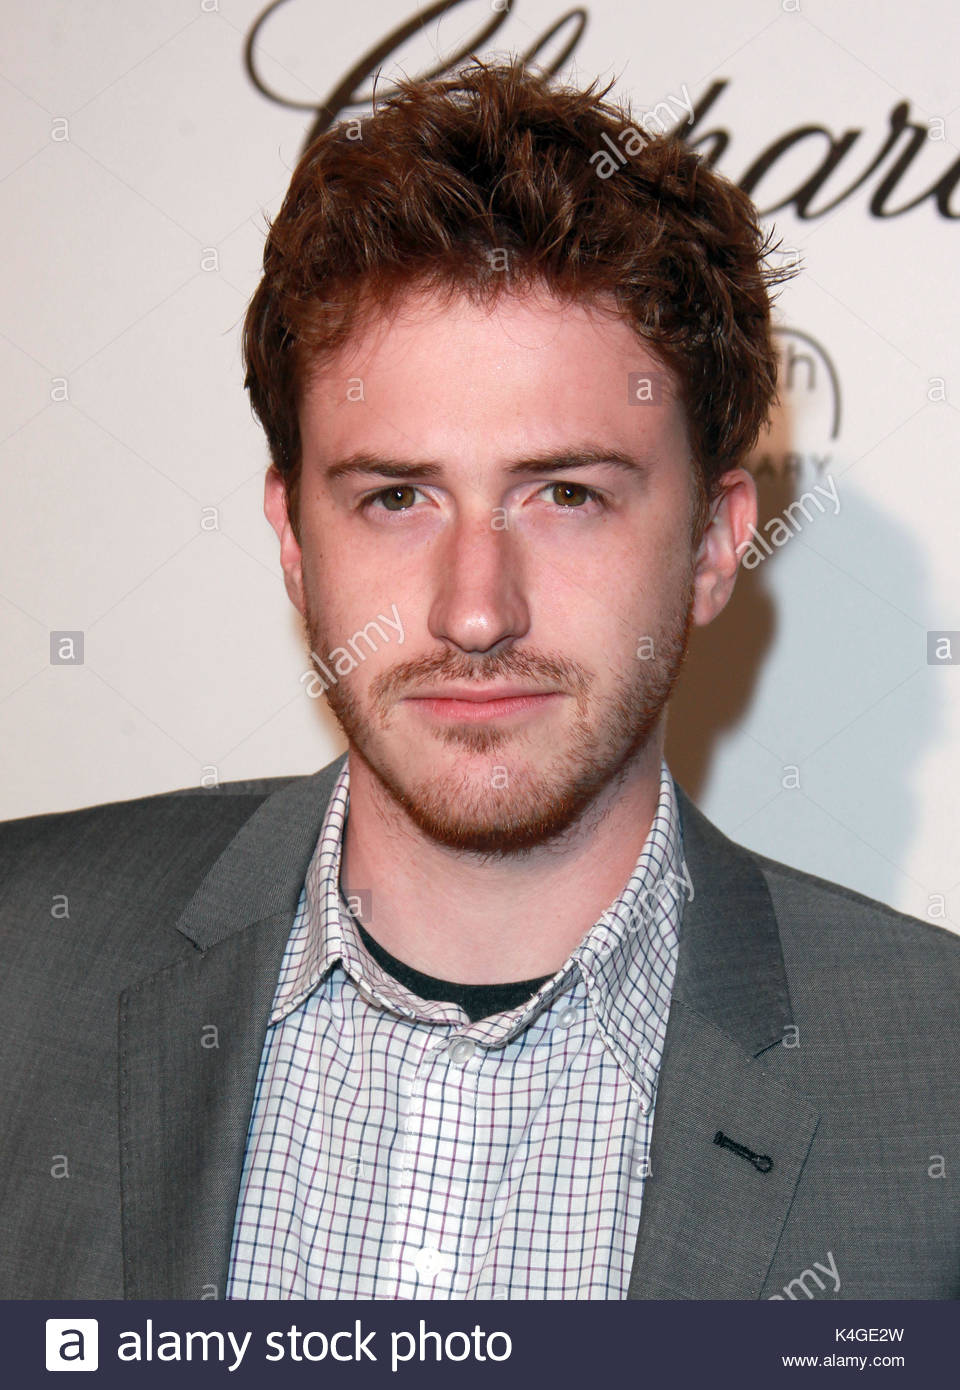 Joe Mazzello Stock Photos Amp Joe Mazzello Stock Images Alamy